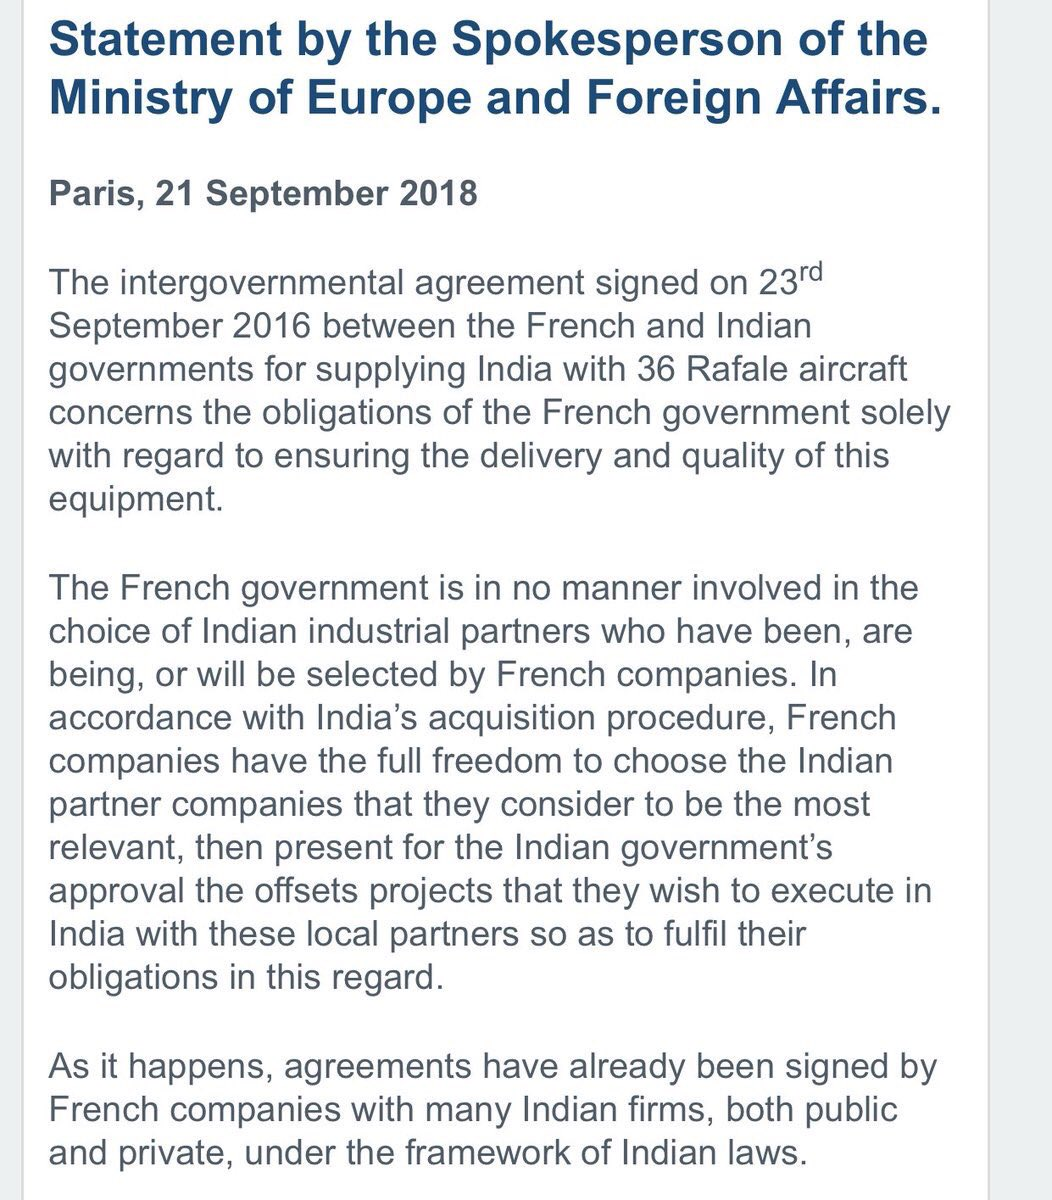 French Goverment demolishes the lies being spread on #RafaleDeal https://t.co/zIJBBgKRE4